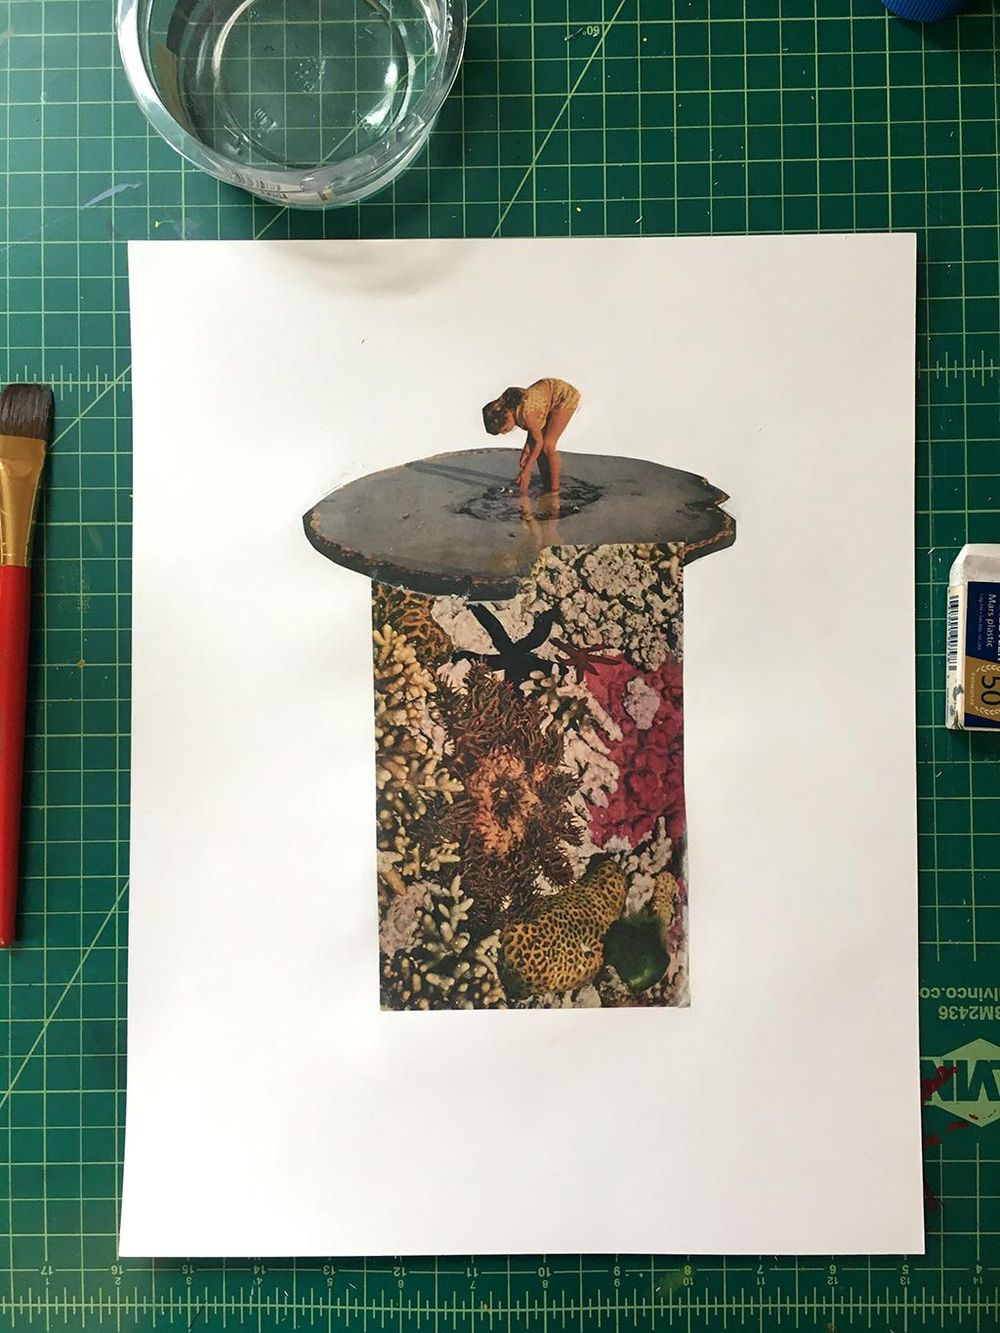 Gloss Gel Transfer Mixed Media Artwork - image 1 - student project